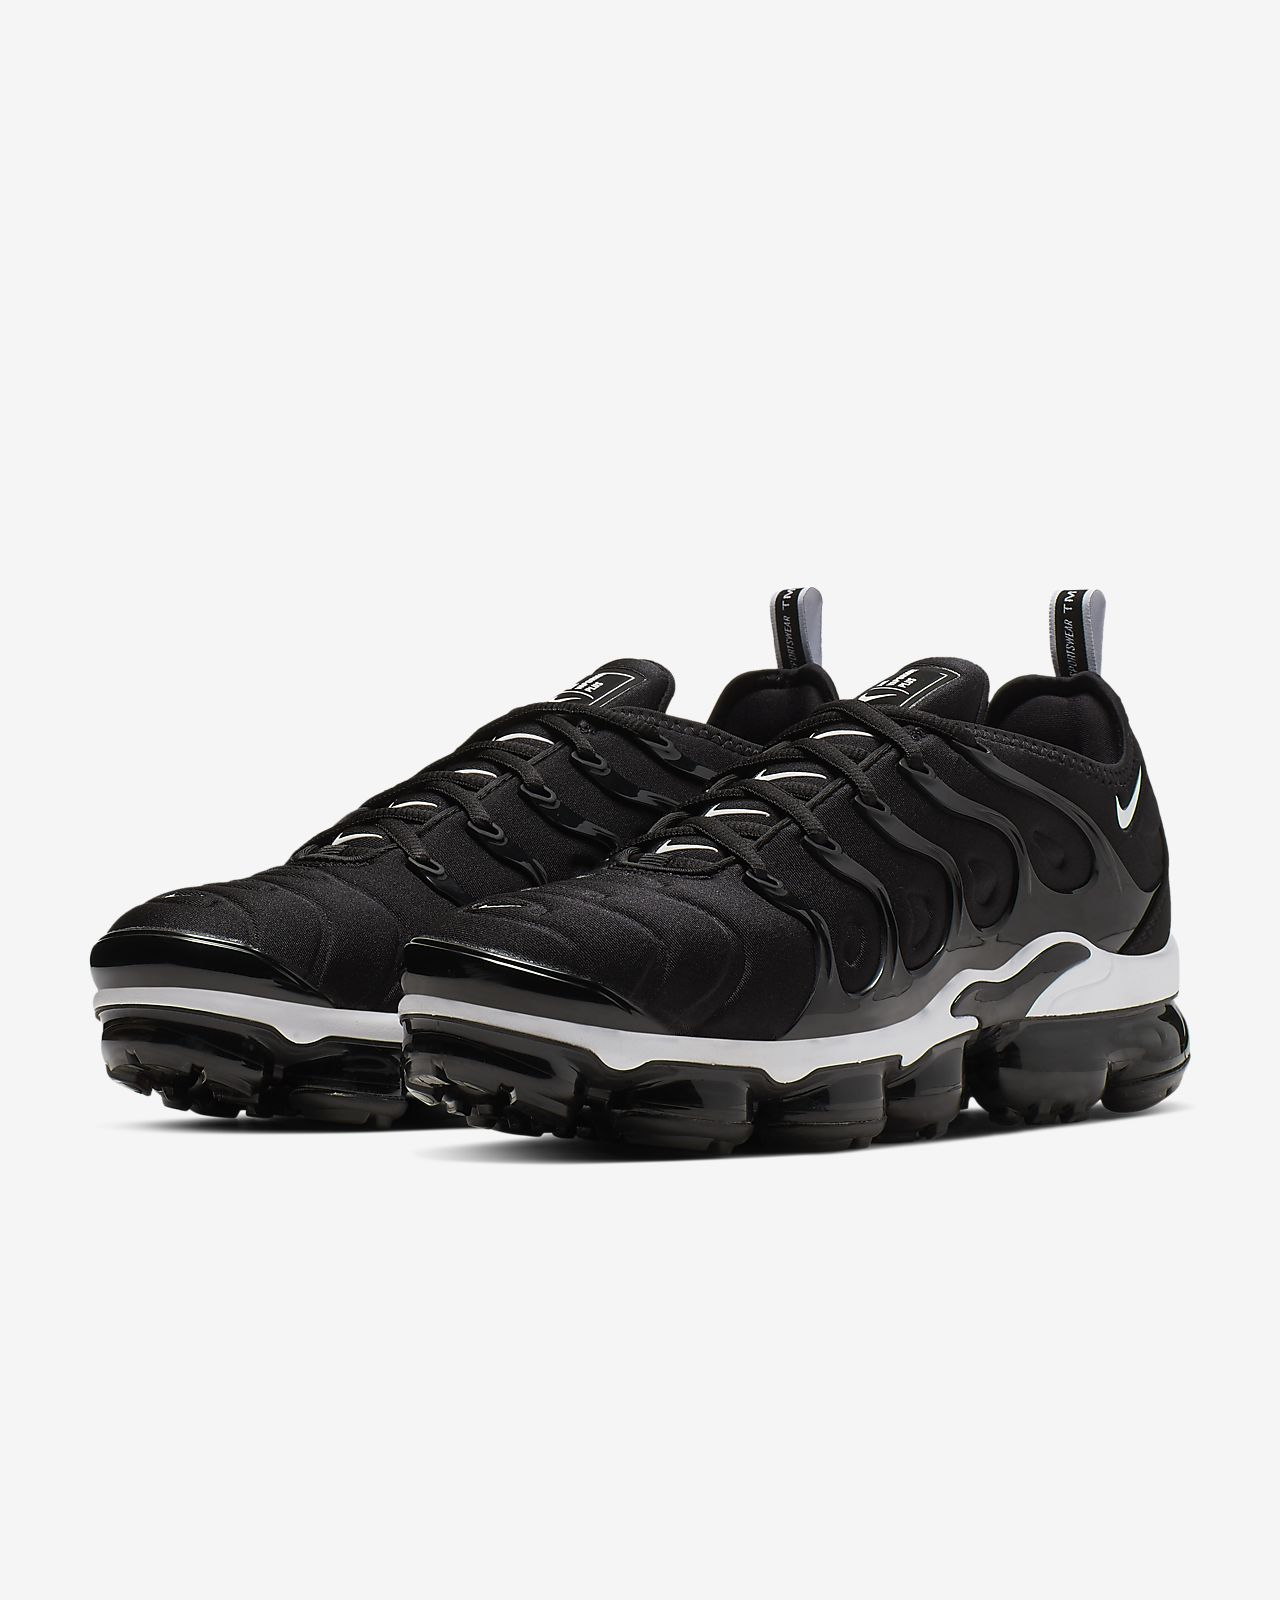 4d13a40b4e3 Nike Air VaporMax Plus Men s Shoe. Nike.com GB